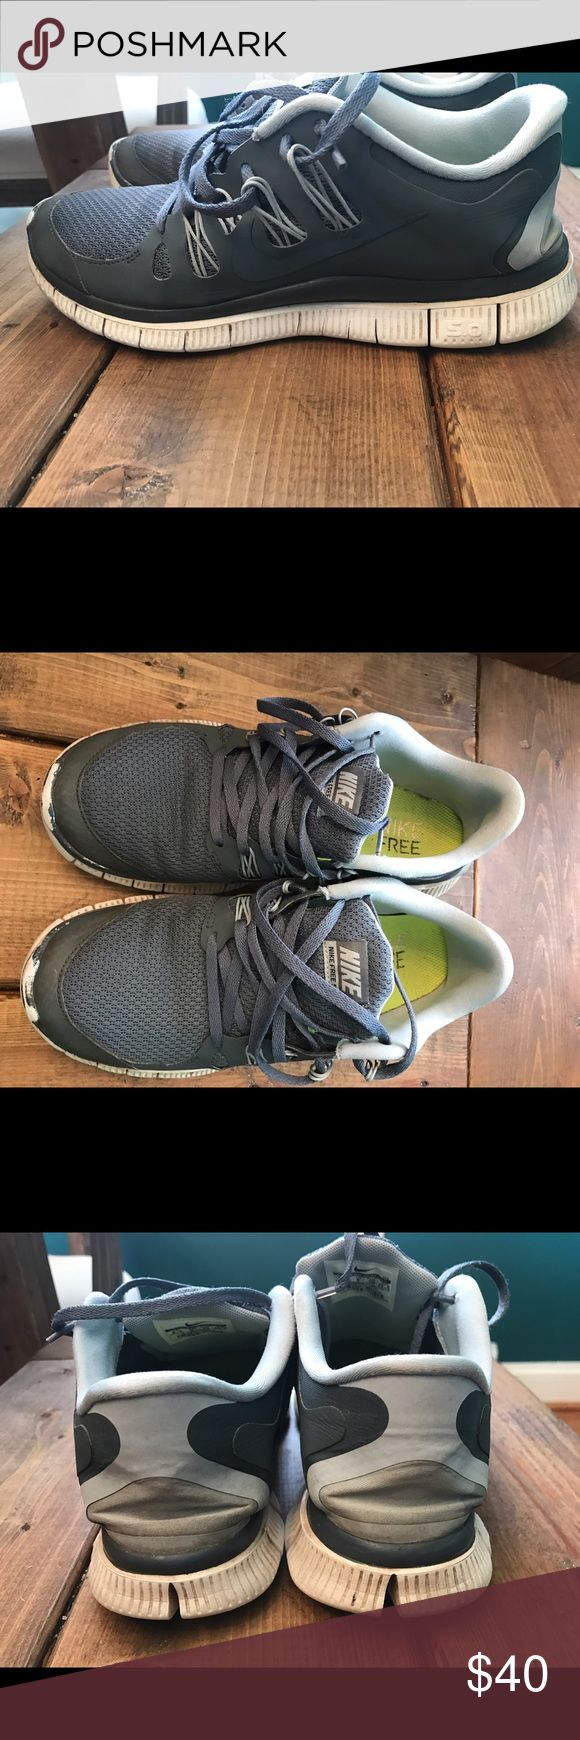 Nike Free 5.0 runners Pretty grayish color. Stylish! Worn but good shape. None of my shoes fit after pregnancy. My loss, your gain! Nike Shoes Sneakers